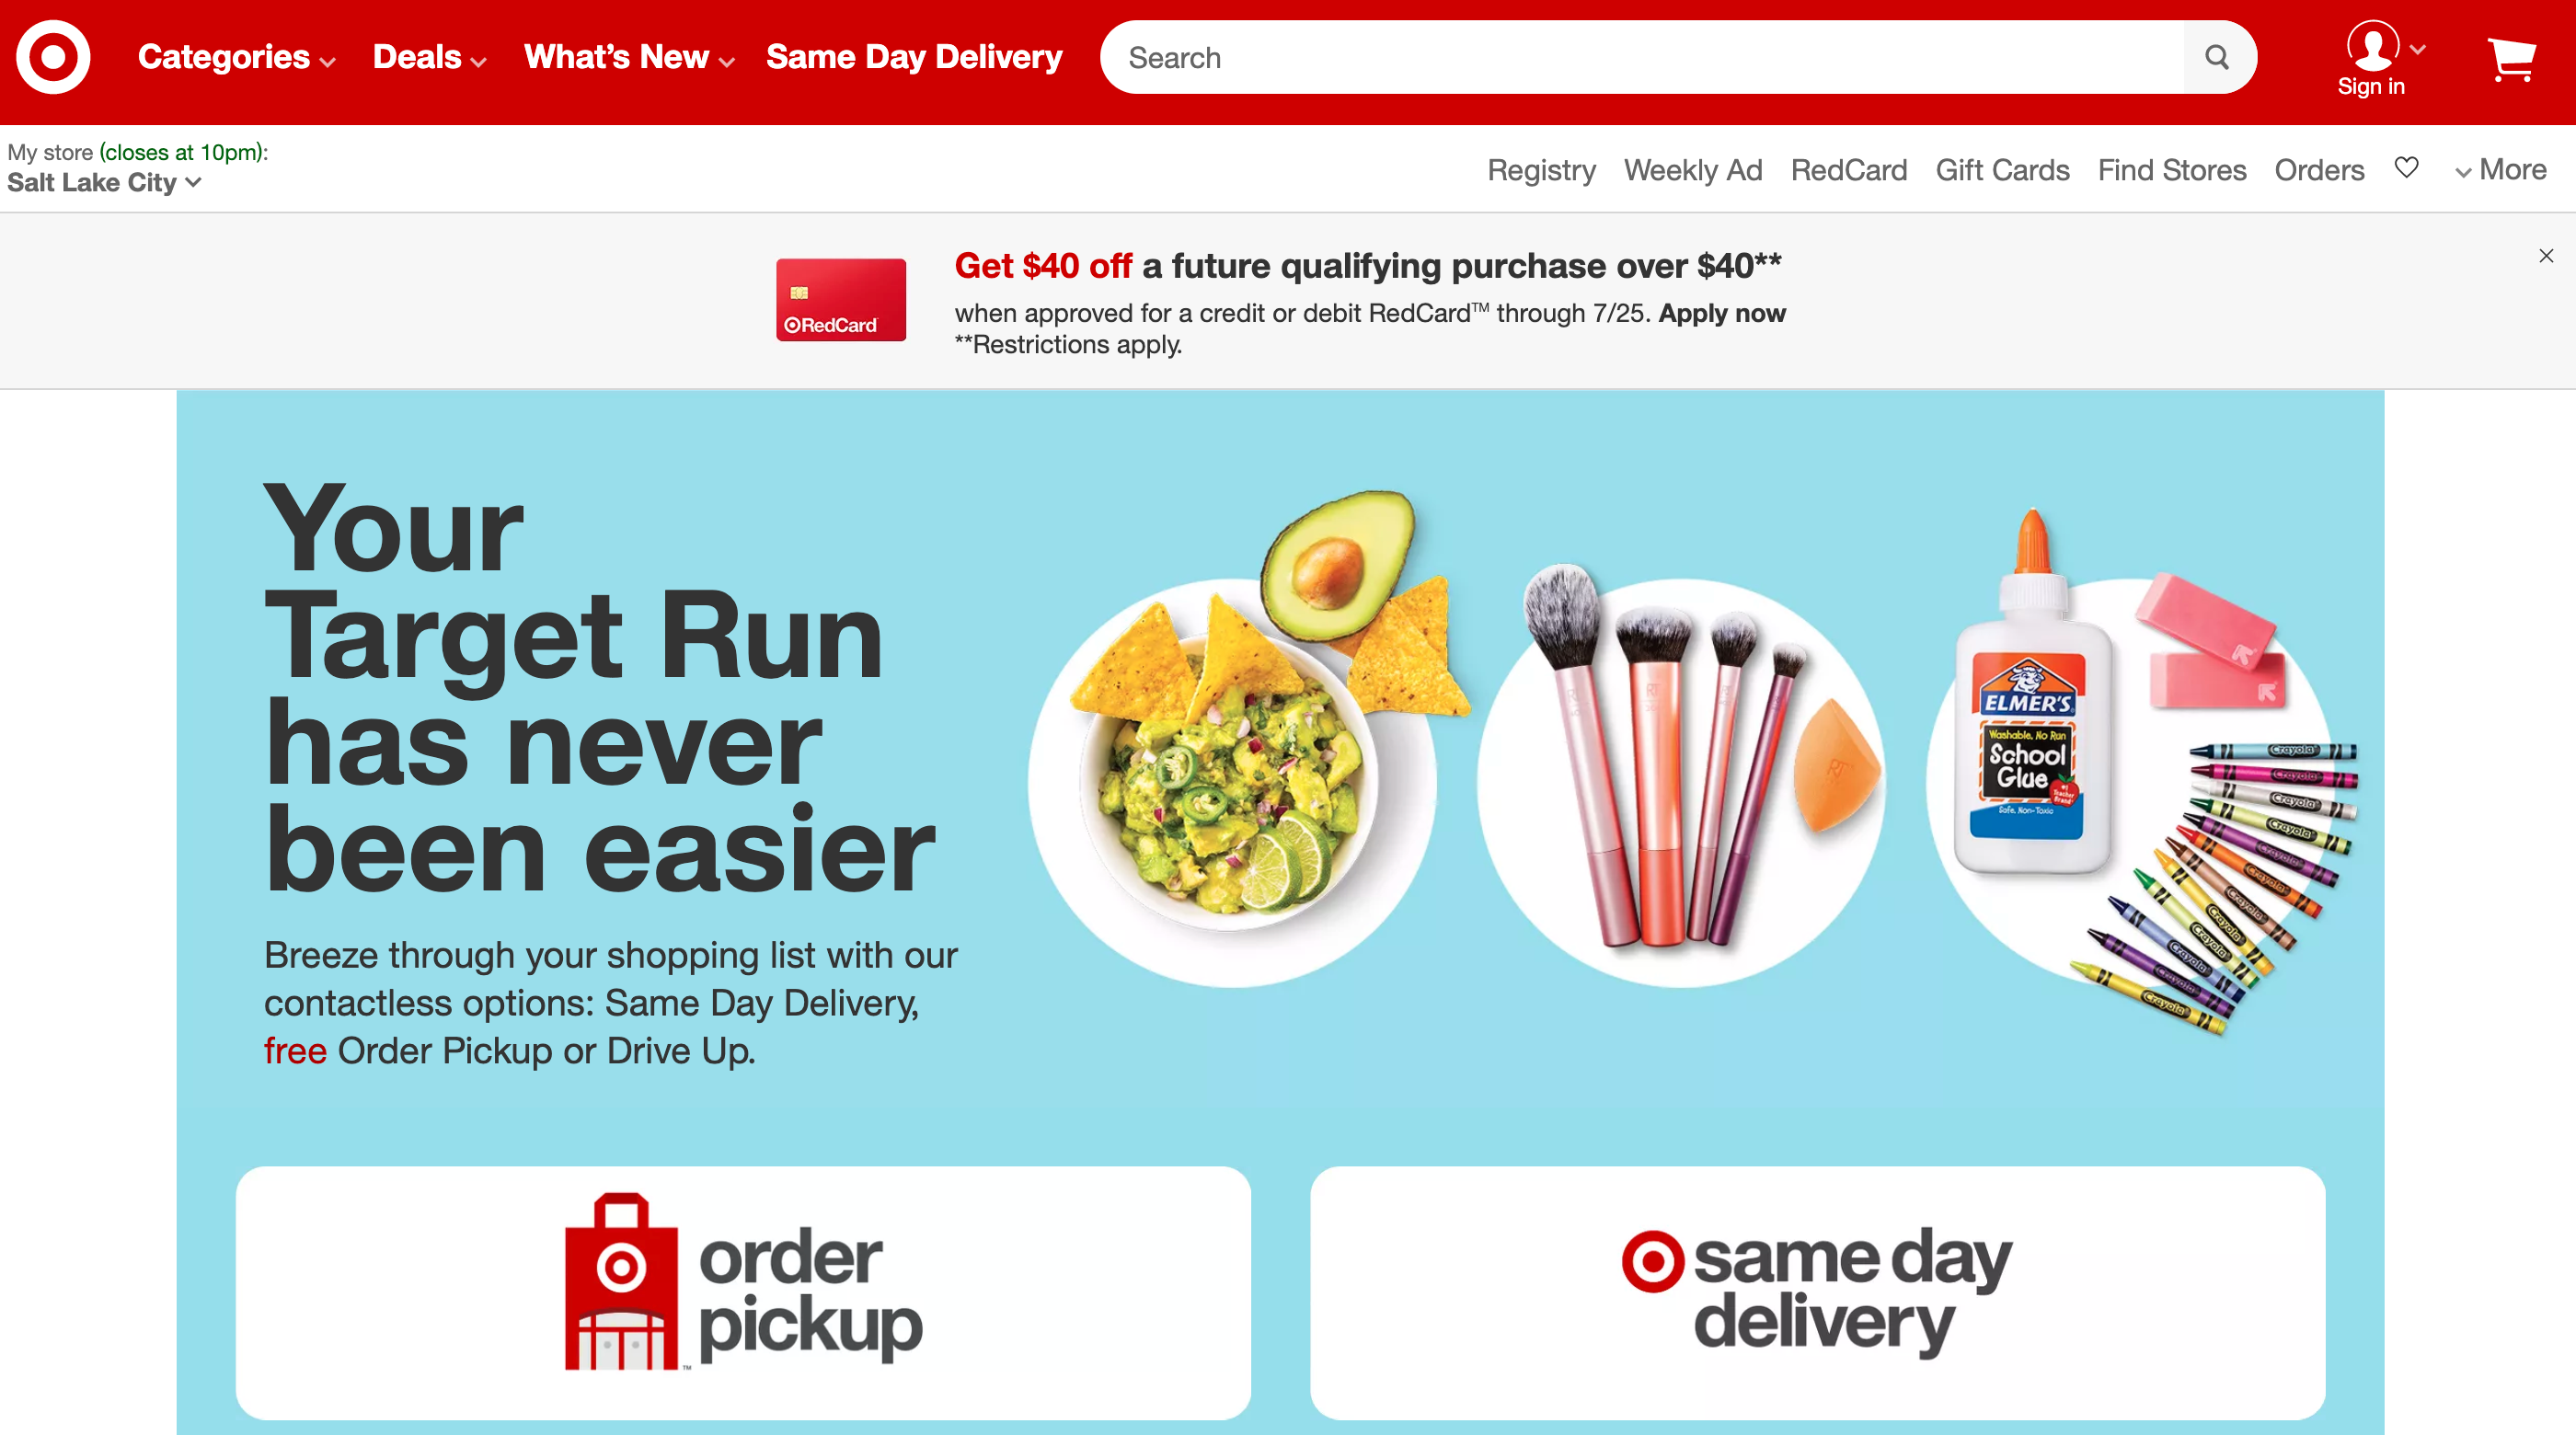 Target Brand Equity Online | Pattern